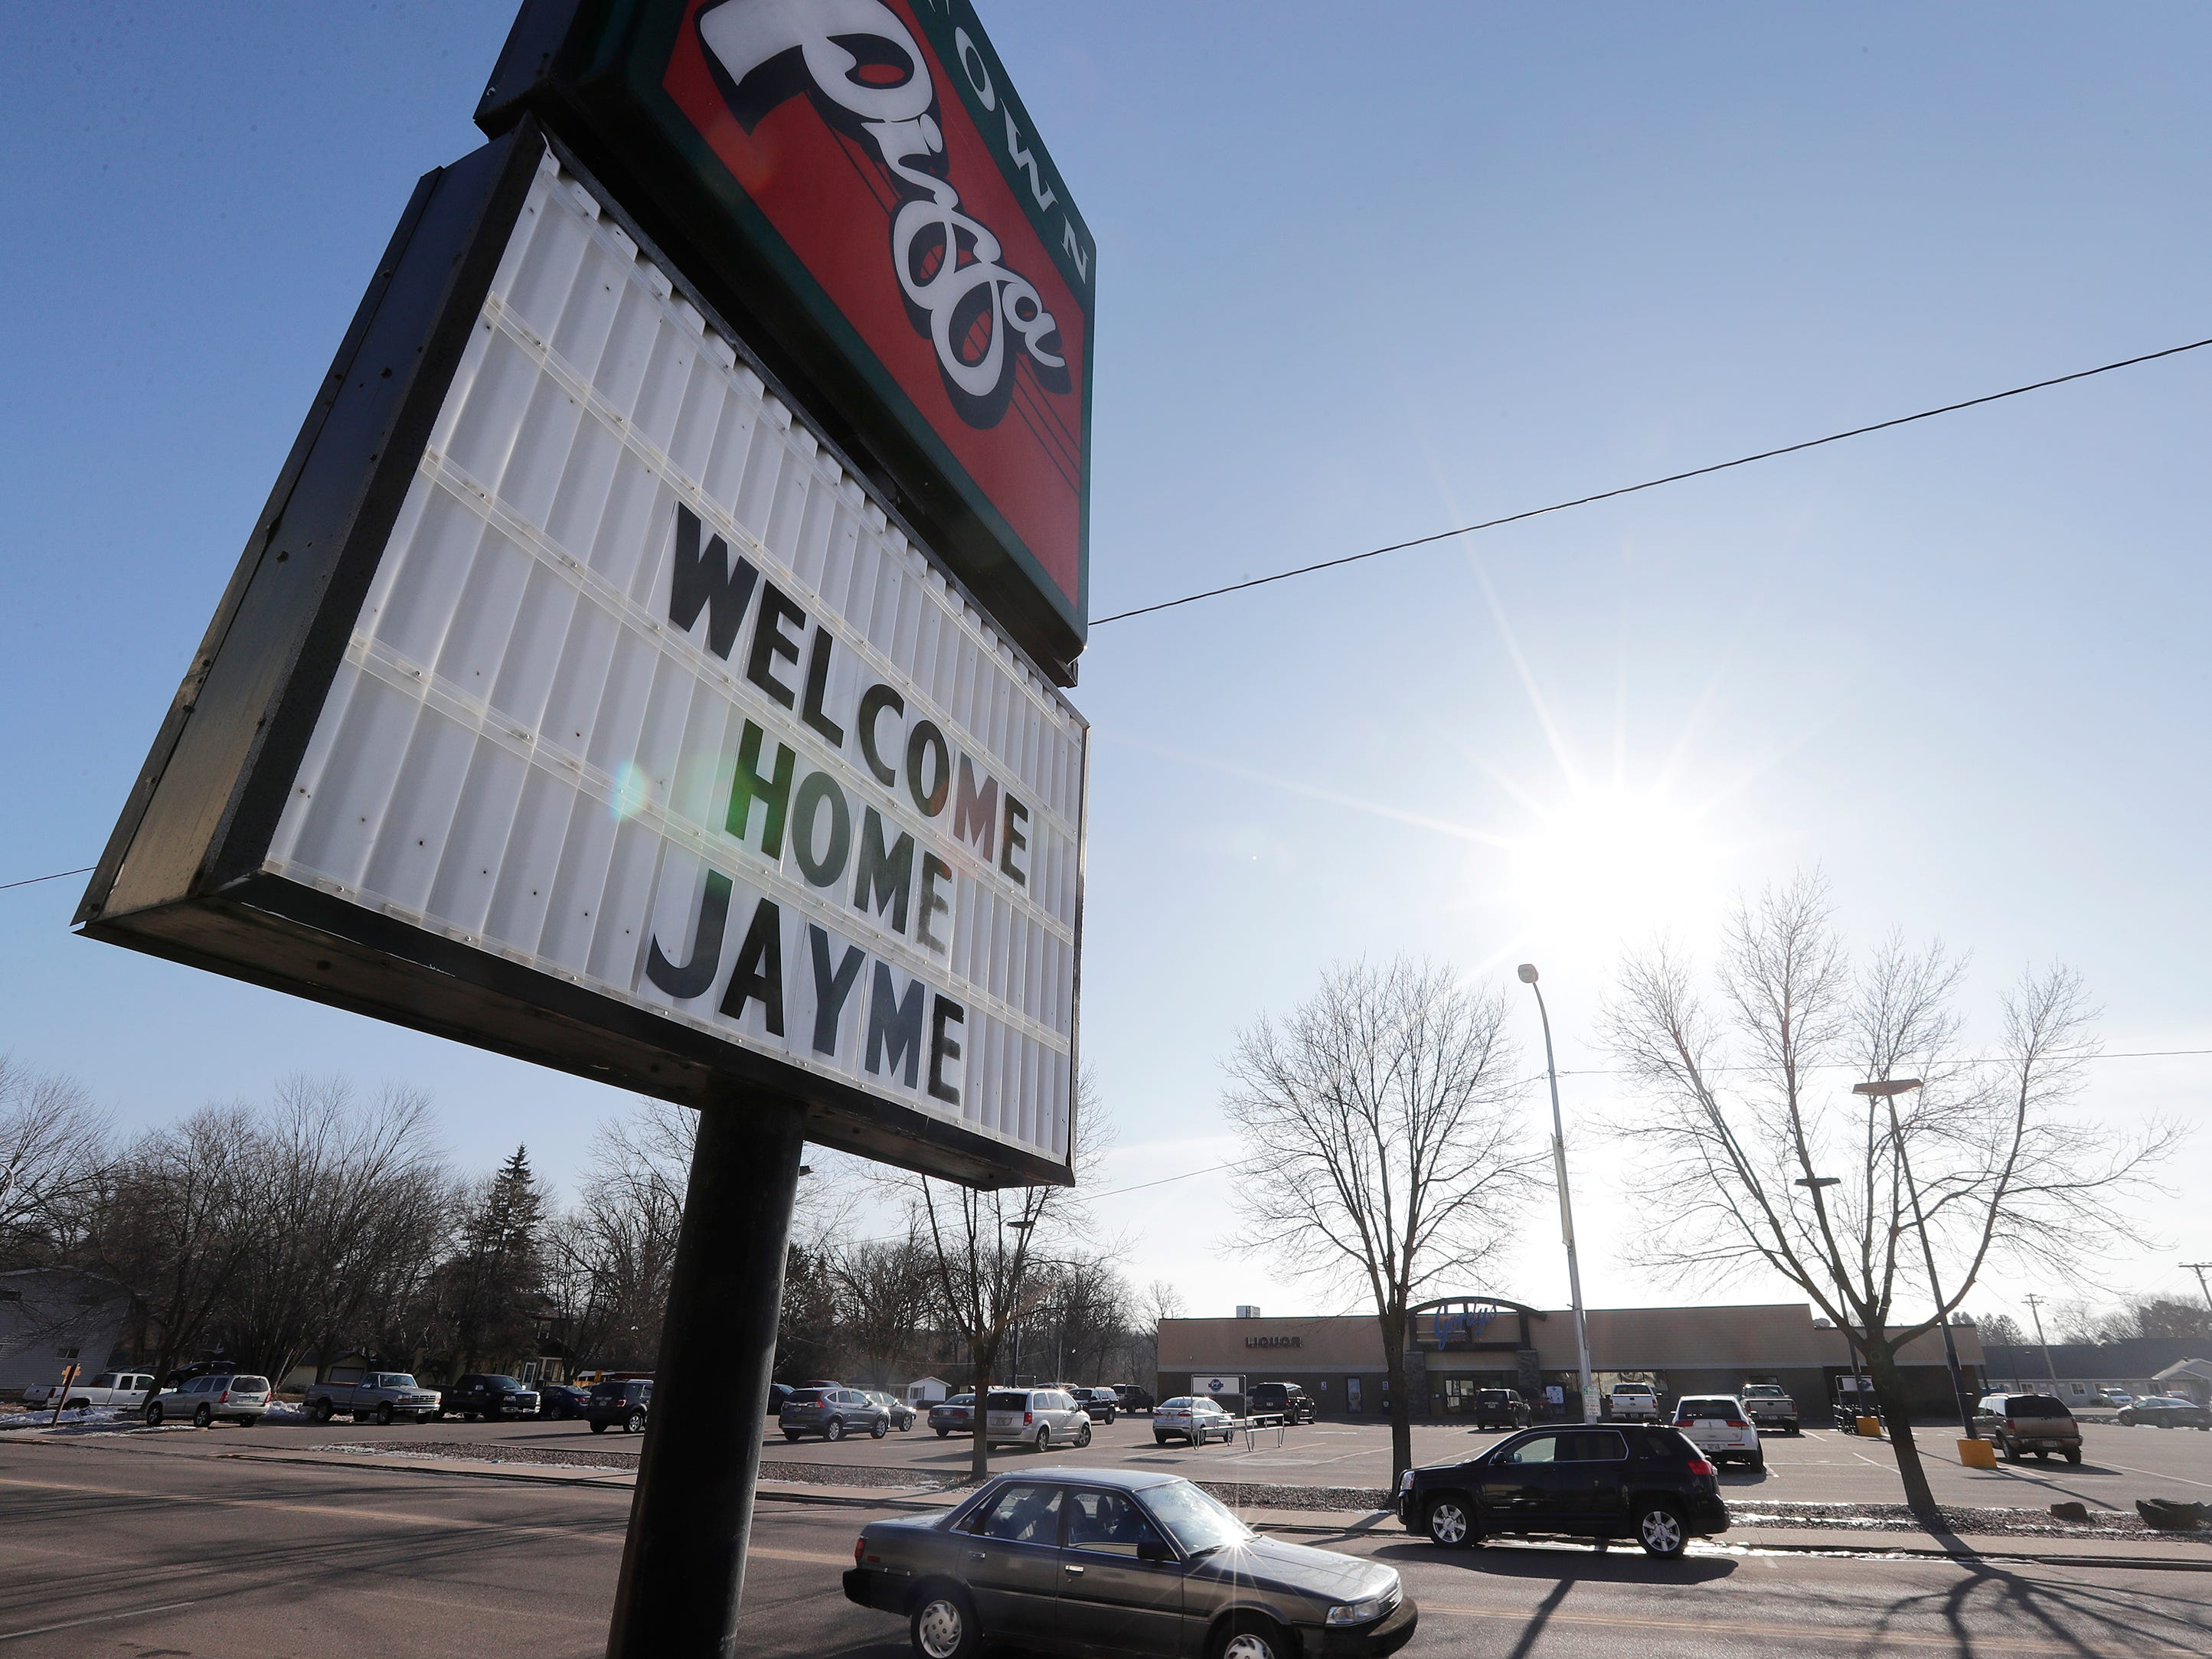 Signs welcoming Jayme Closs back are displayed on Friday, January 11, 2019 in Barron, Wis. Douglas County officials found 13-year-old Jayme Closs on Thursday near the northern Wisconsin town of Gordon. Jayme had been missing since Oct. 15, the same day her parents, James, 56, and Denise, 46, were found shot to death in their home outside Barron.